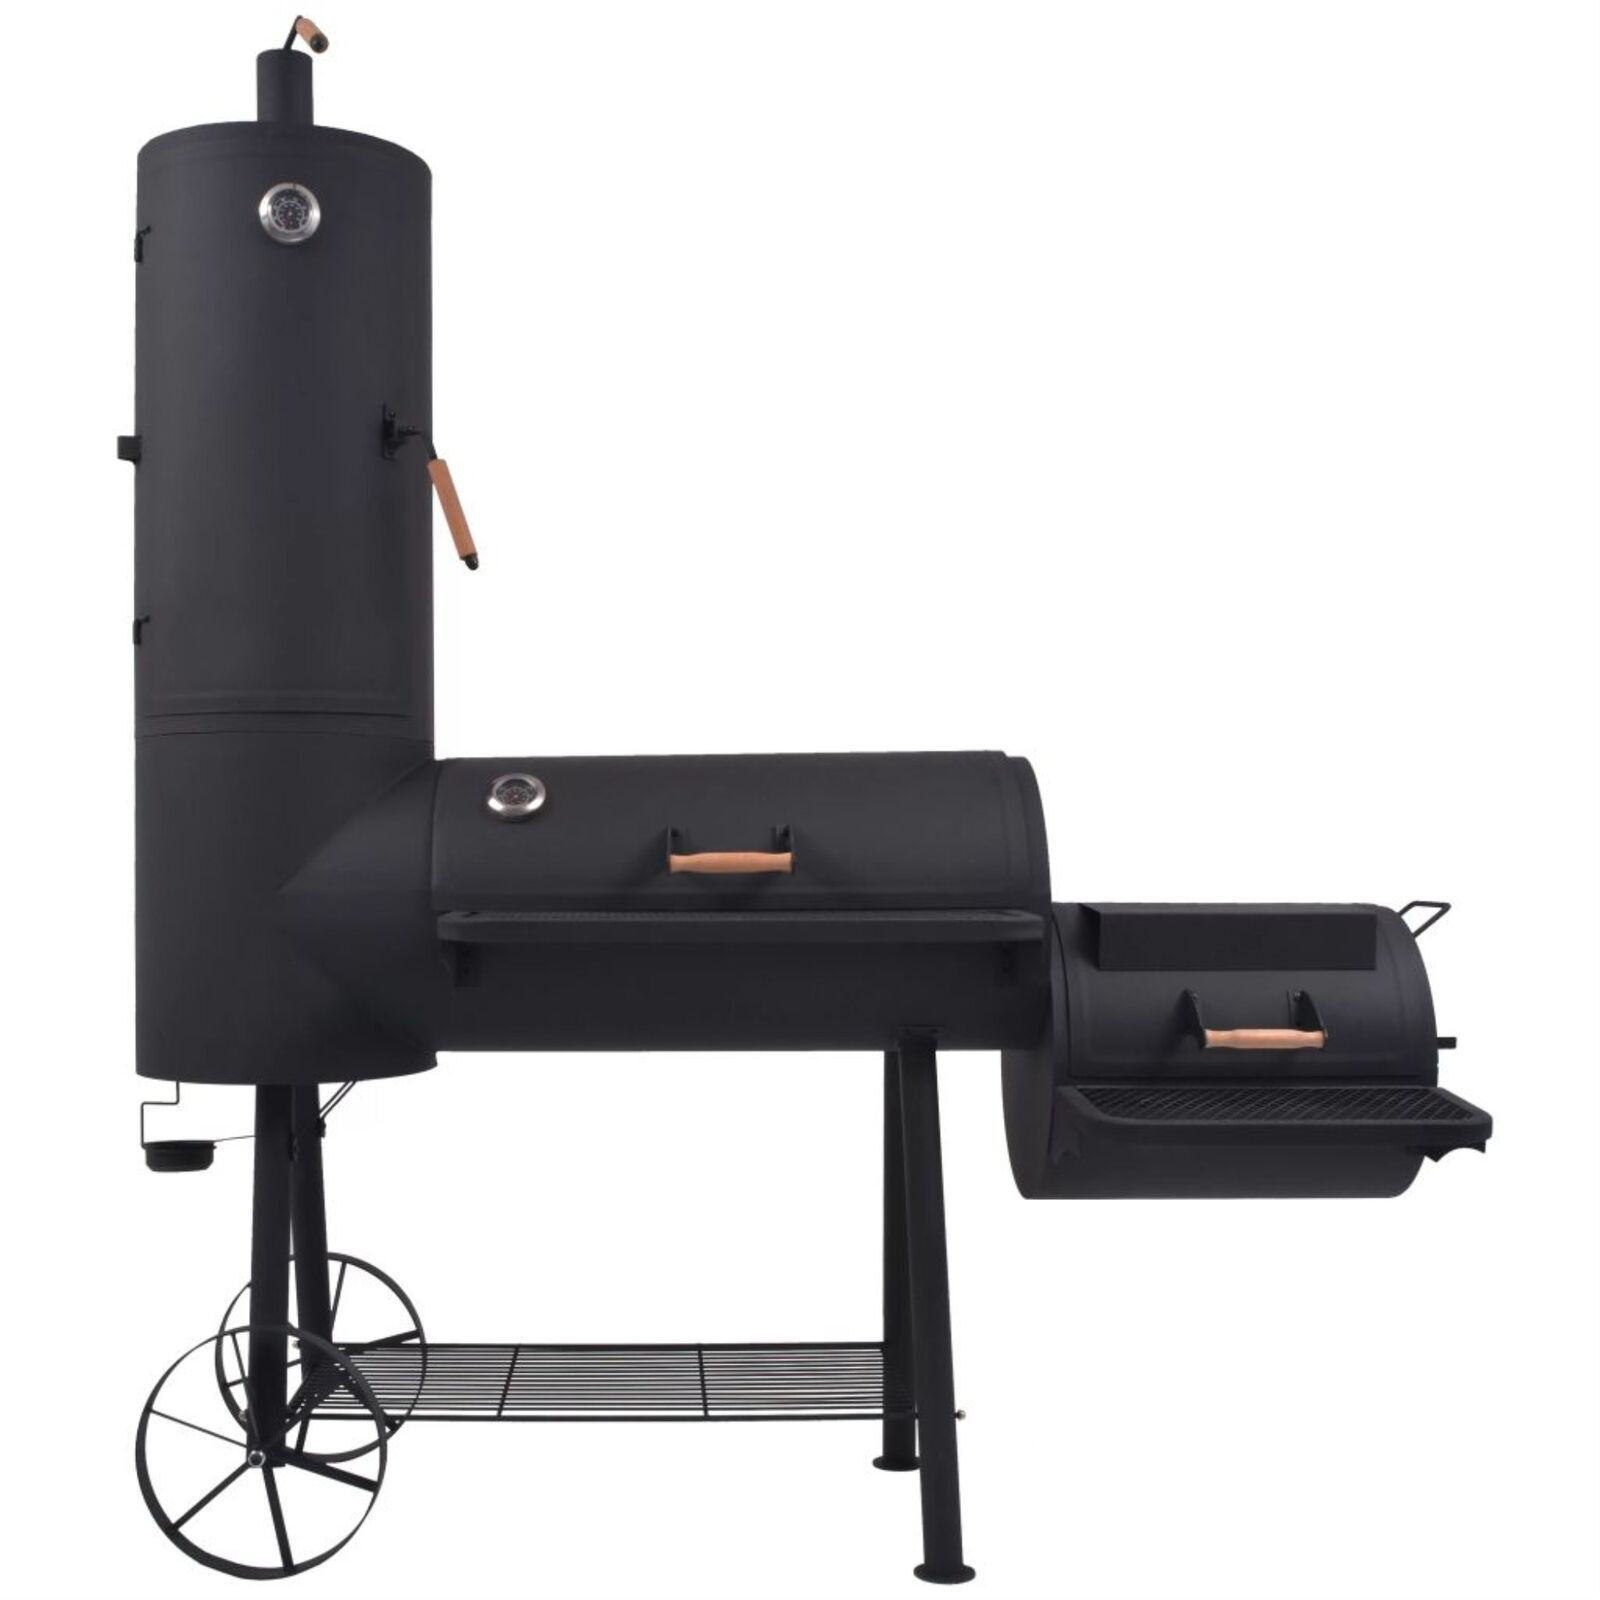 Picture of Outdoor Charcoal  BBQ Grills Smoker